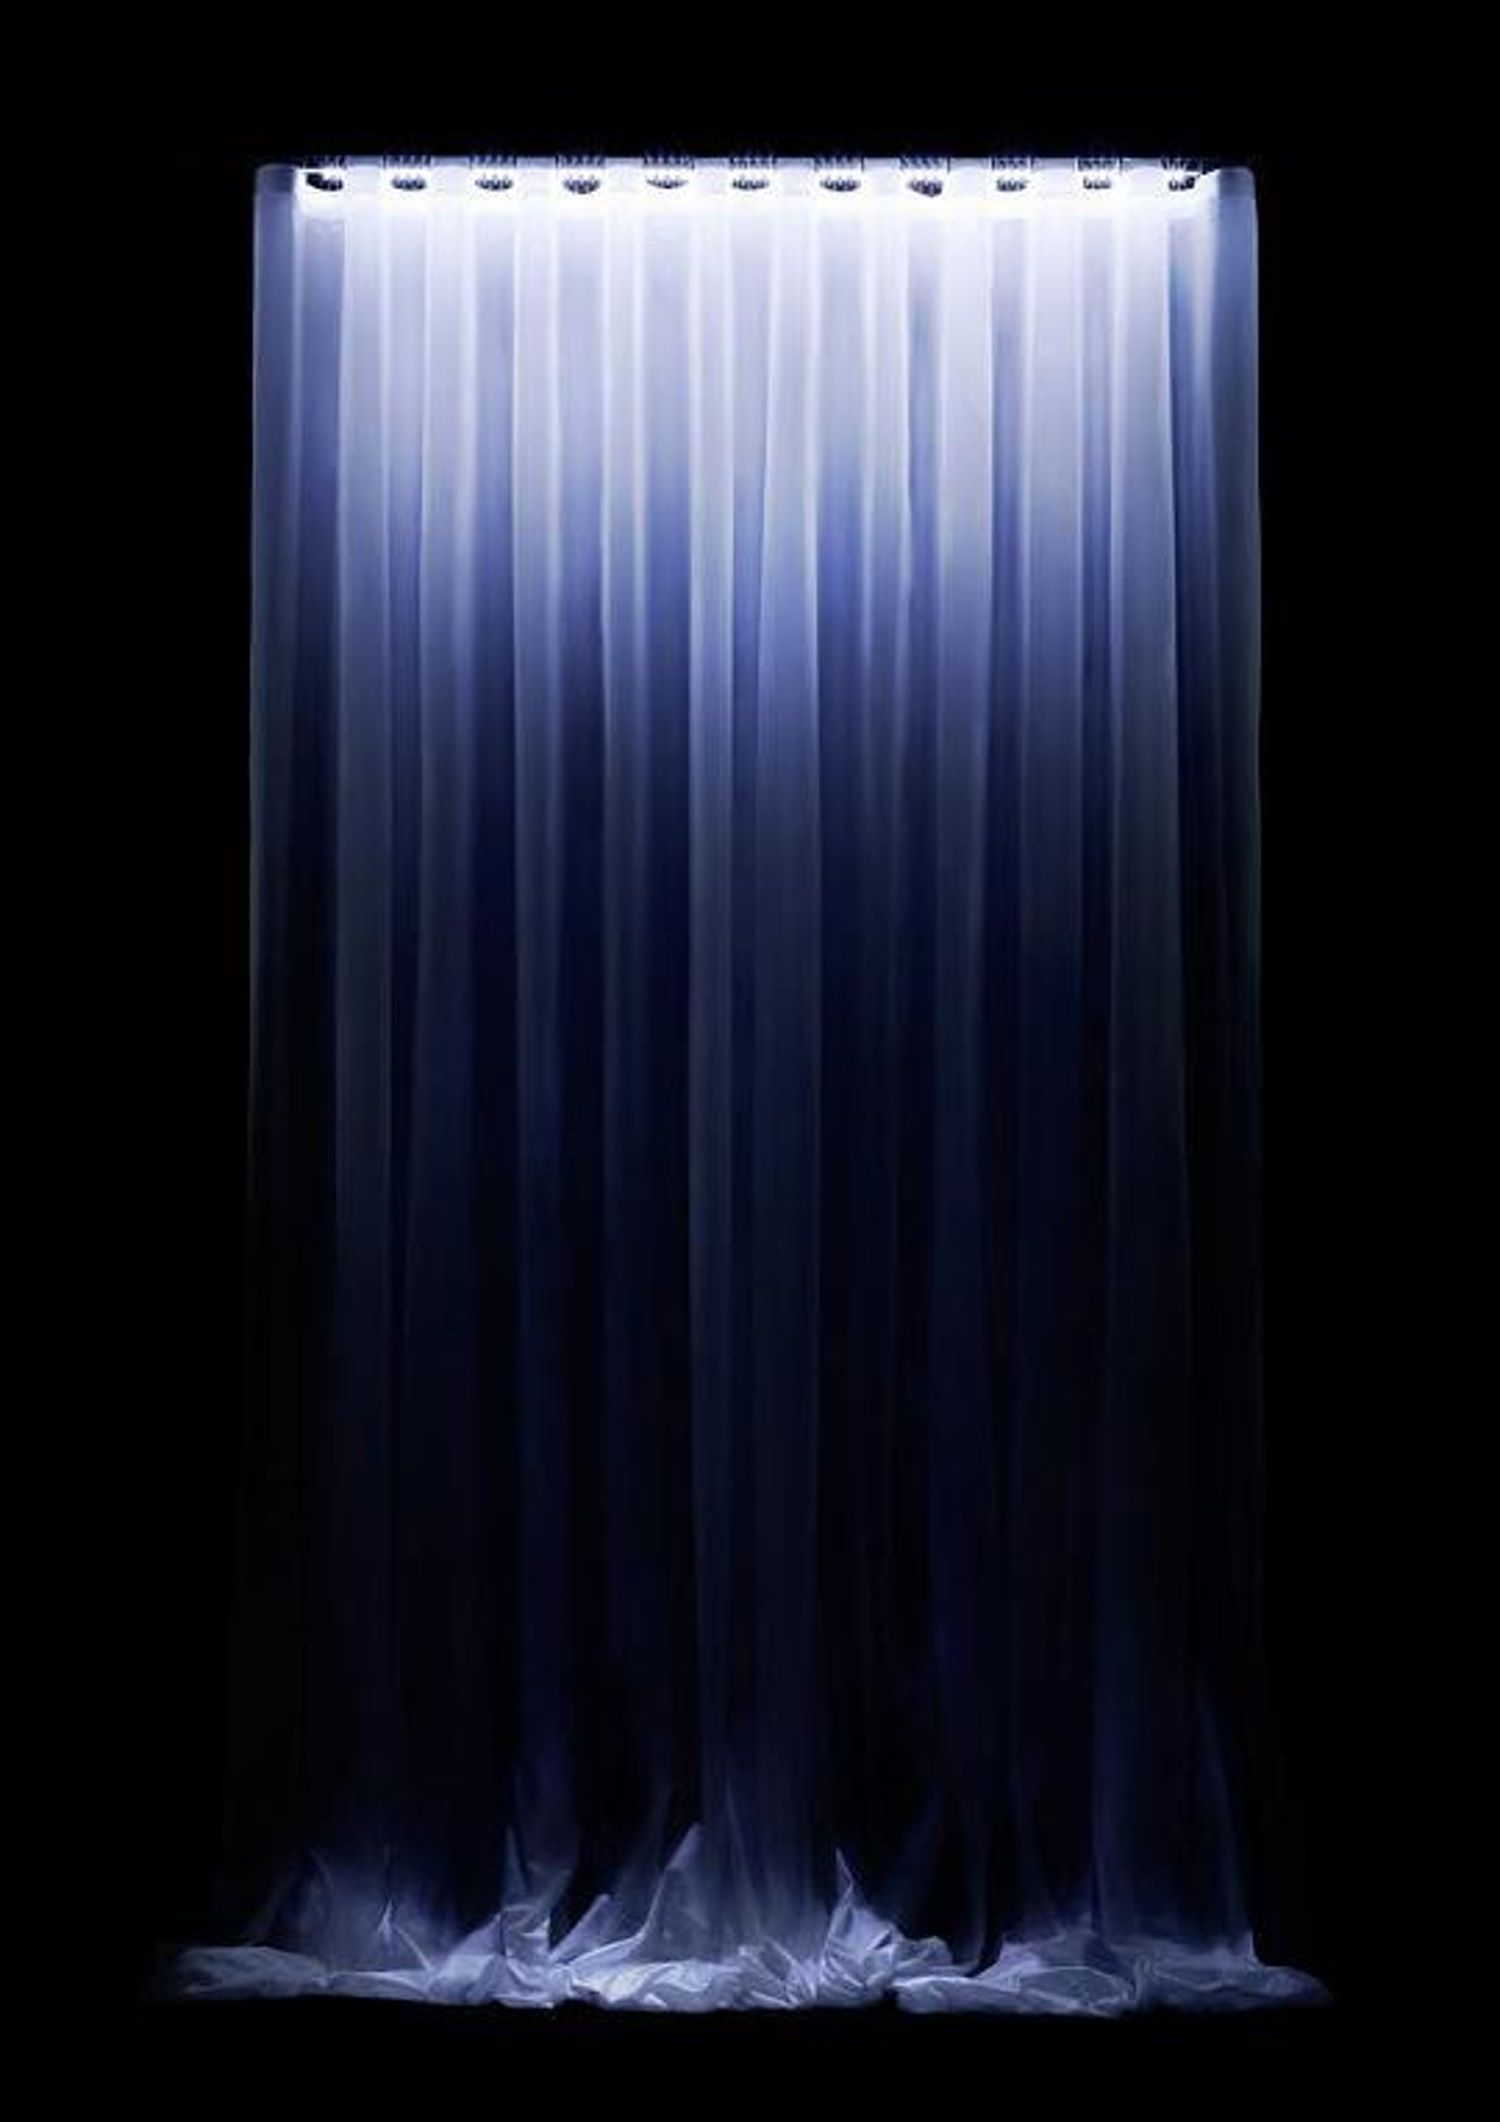 Waterfall LED Curtain Turns Night To Day Electric Zoo Shanghai 2016 Led Curtain Lights